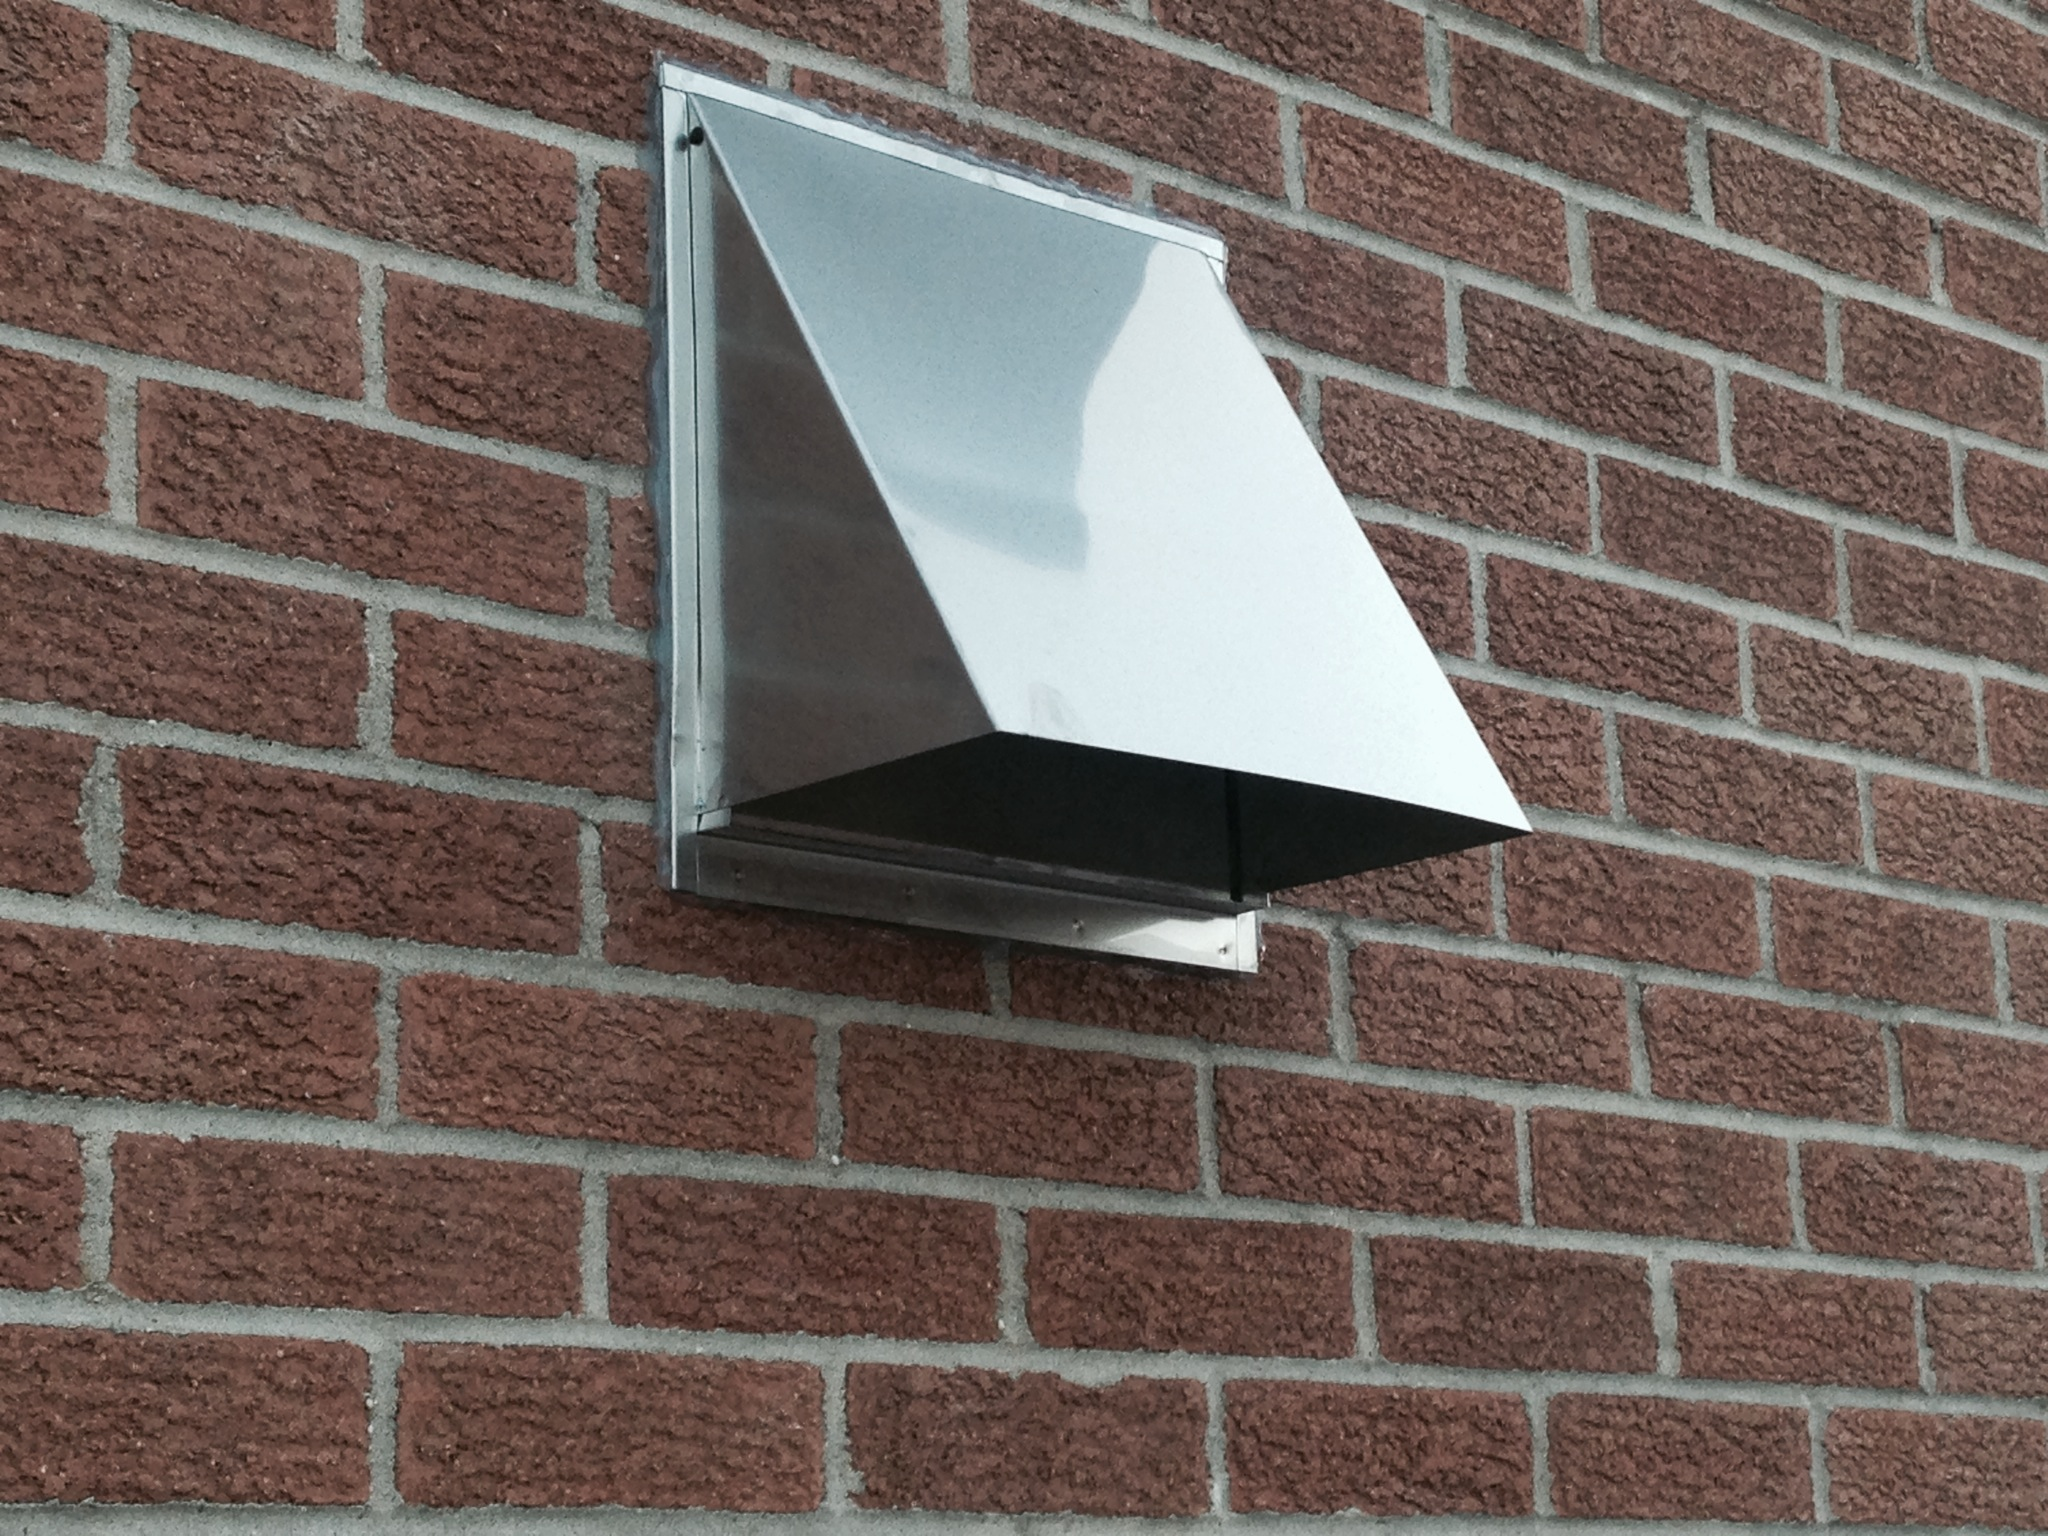 Range Exhaust Wall Vents And Roof Vents From Luxury Metals - Bathroom vent hood